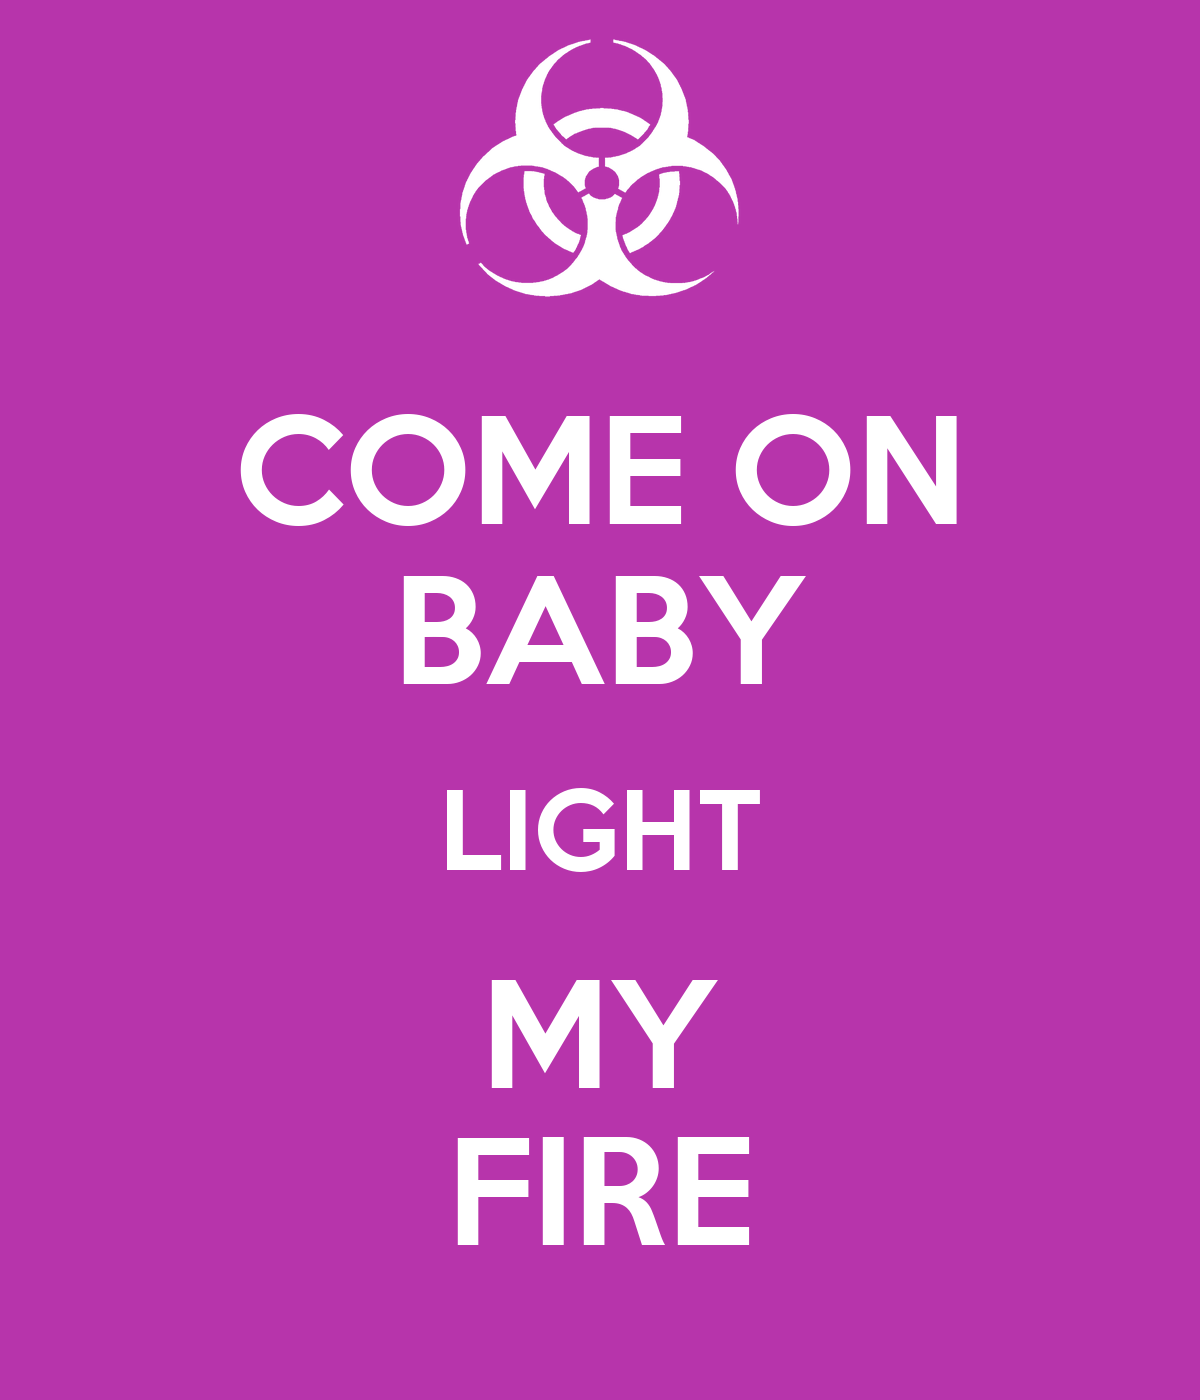 Come on baby, light my fire